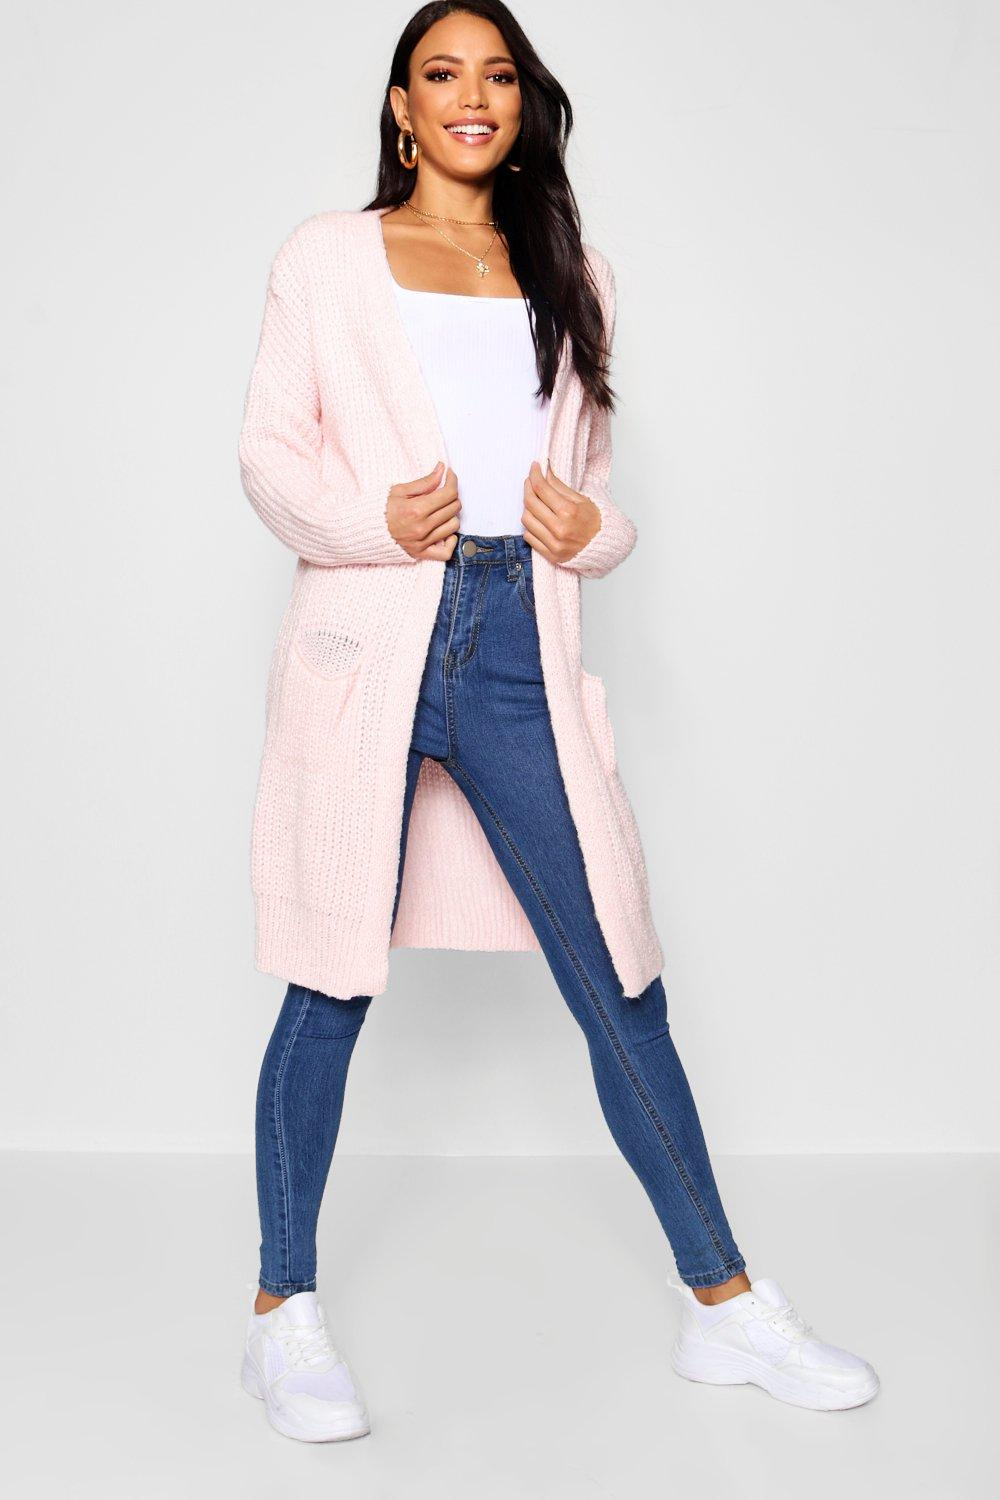 Feel like you just shopped in your boyfriend's closet when you slip on a soft and cozy boyfriend cardigan with just the right amount of femininity. Find long versions that fit over your hips and buttons that fasten up to your chest in the same style a man may wear, but created just for a woman.